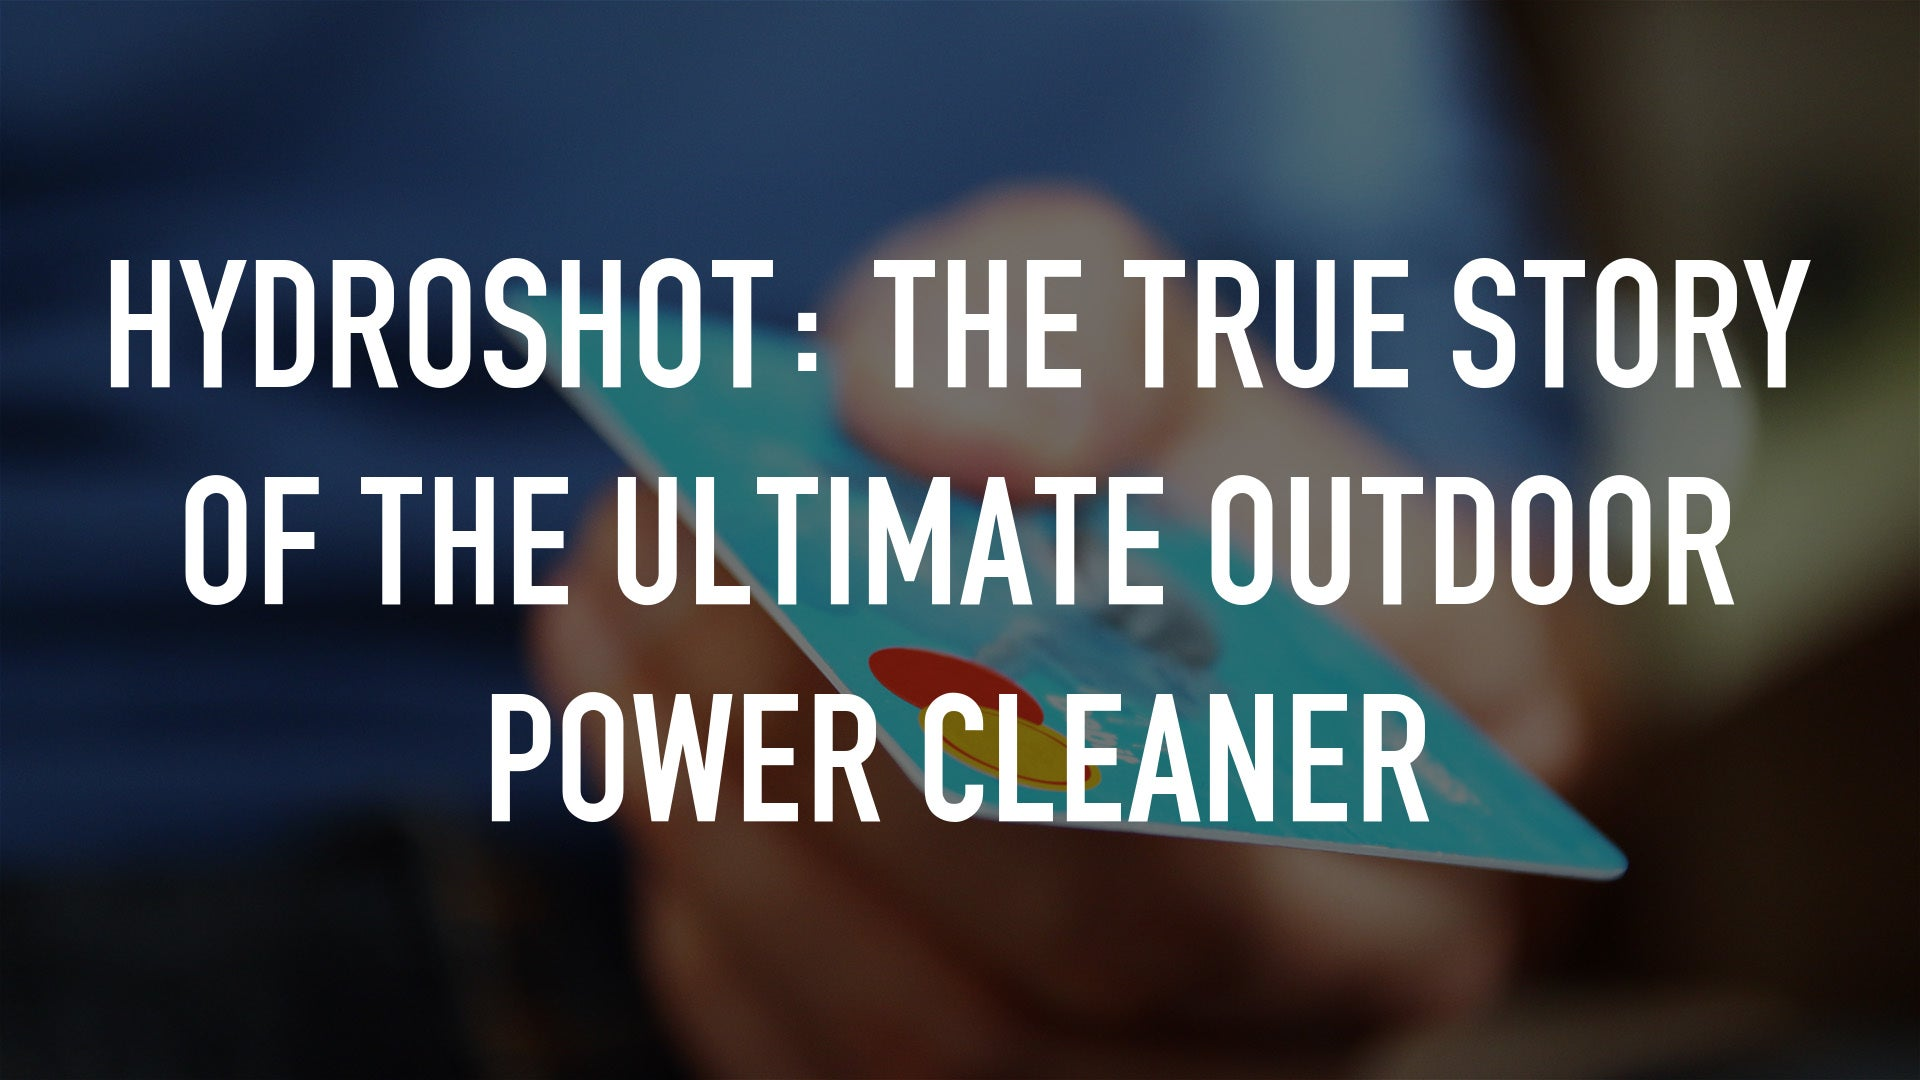 HydroShot: The true story of the ultimate outdoor power cleaner